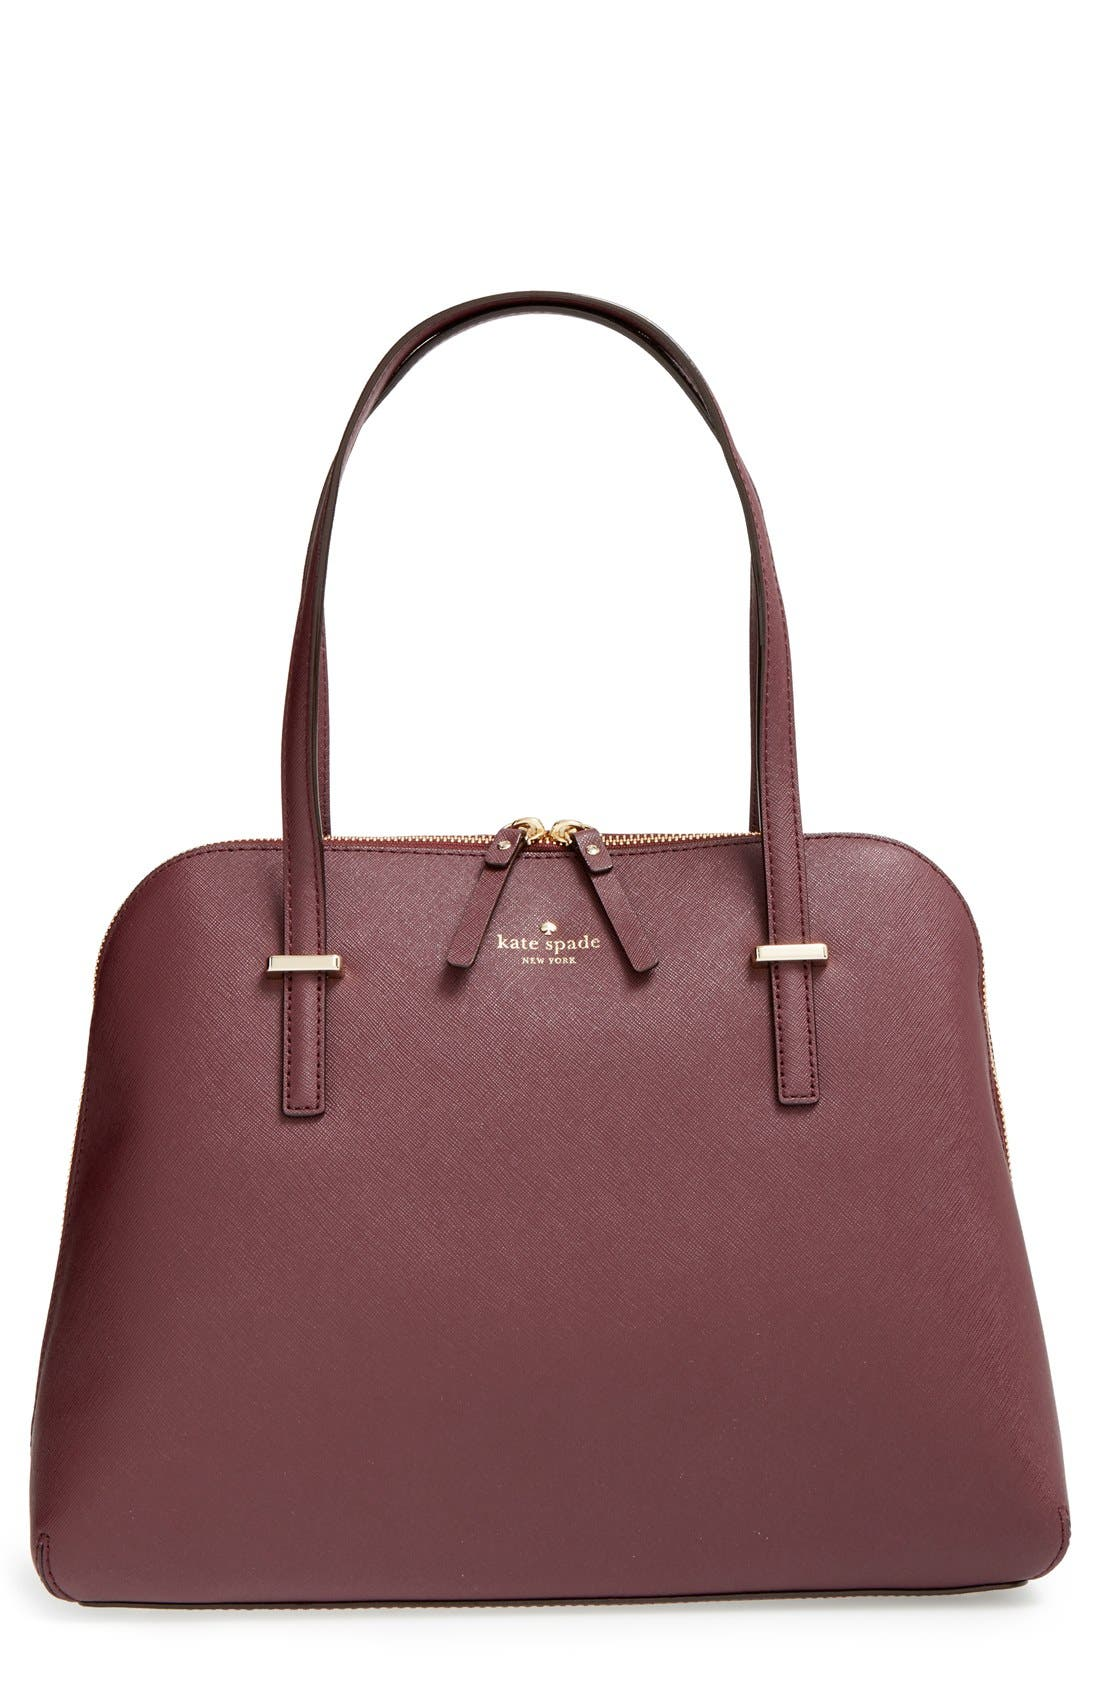 Main Image - kate spade new york 'cedar street - maise' shoulder bag